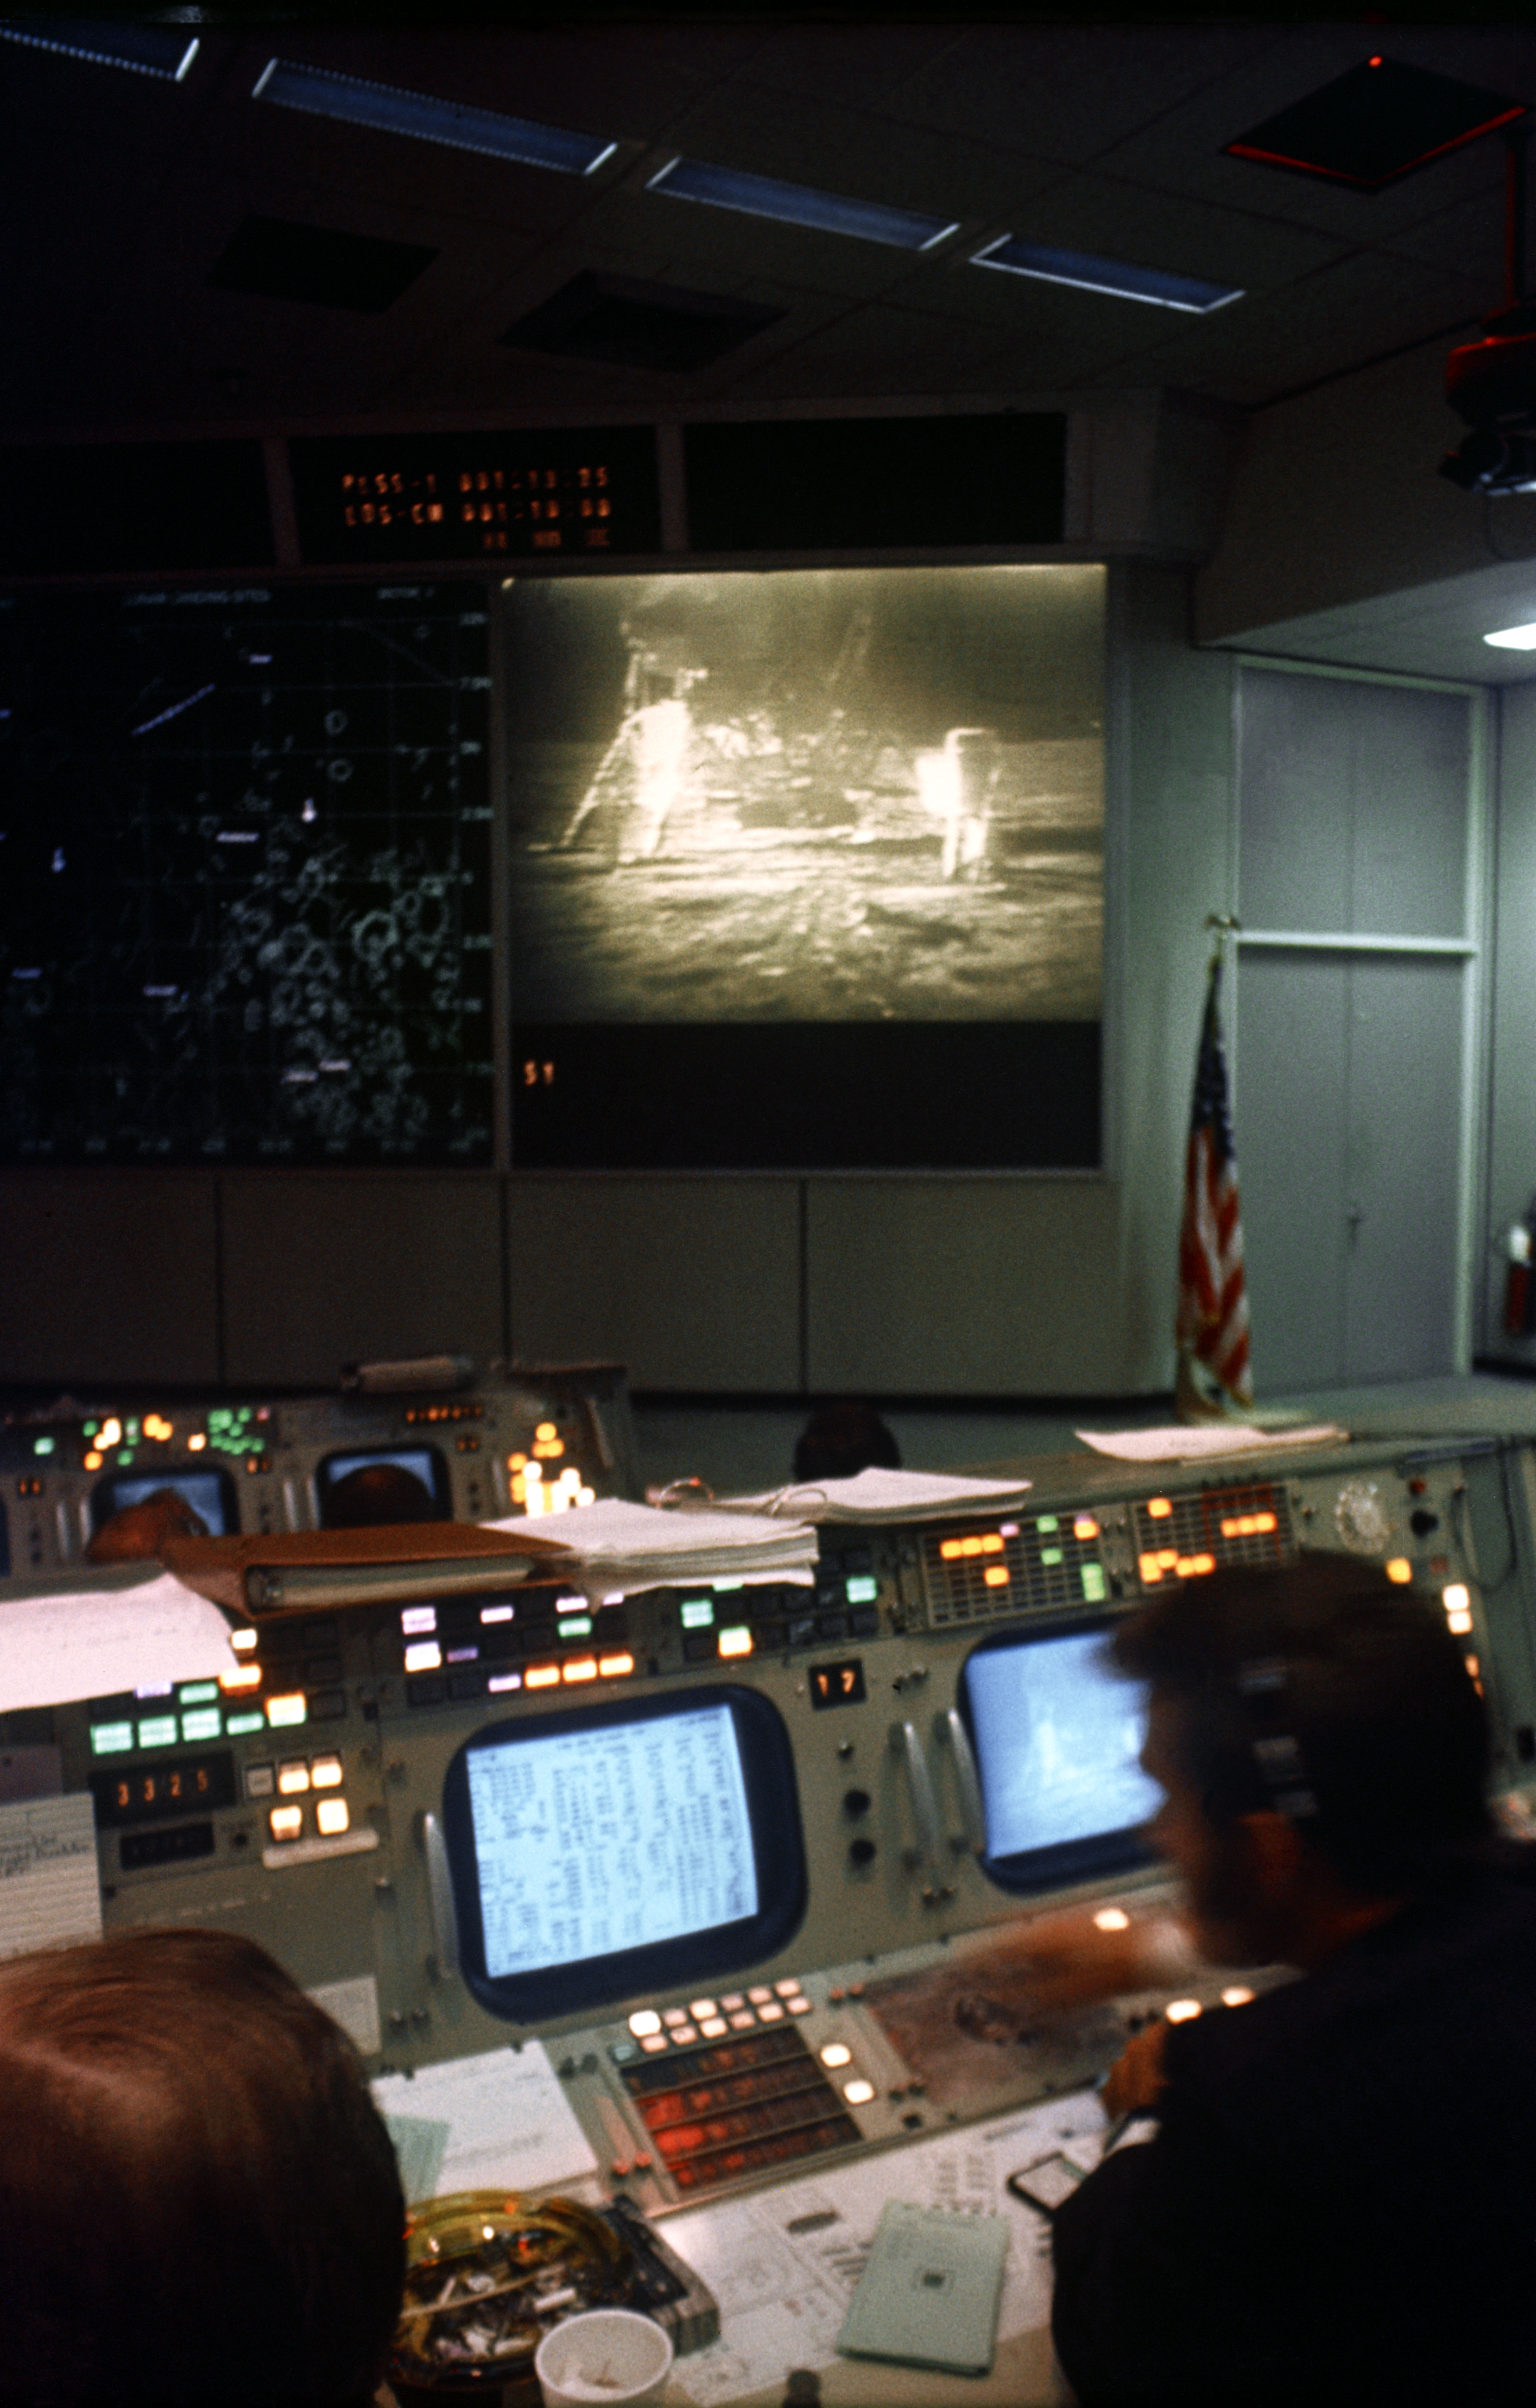 View of the Mission Operations Control Room for Apollo 11